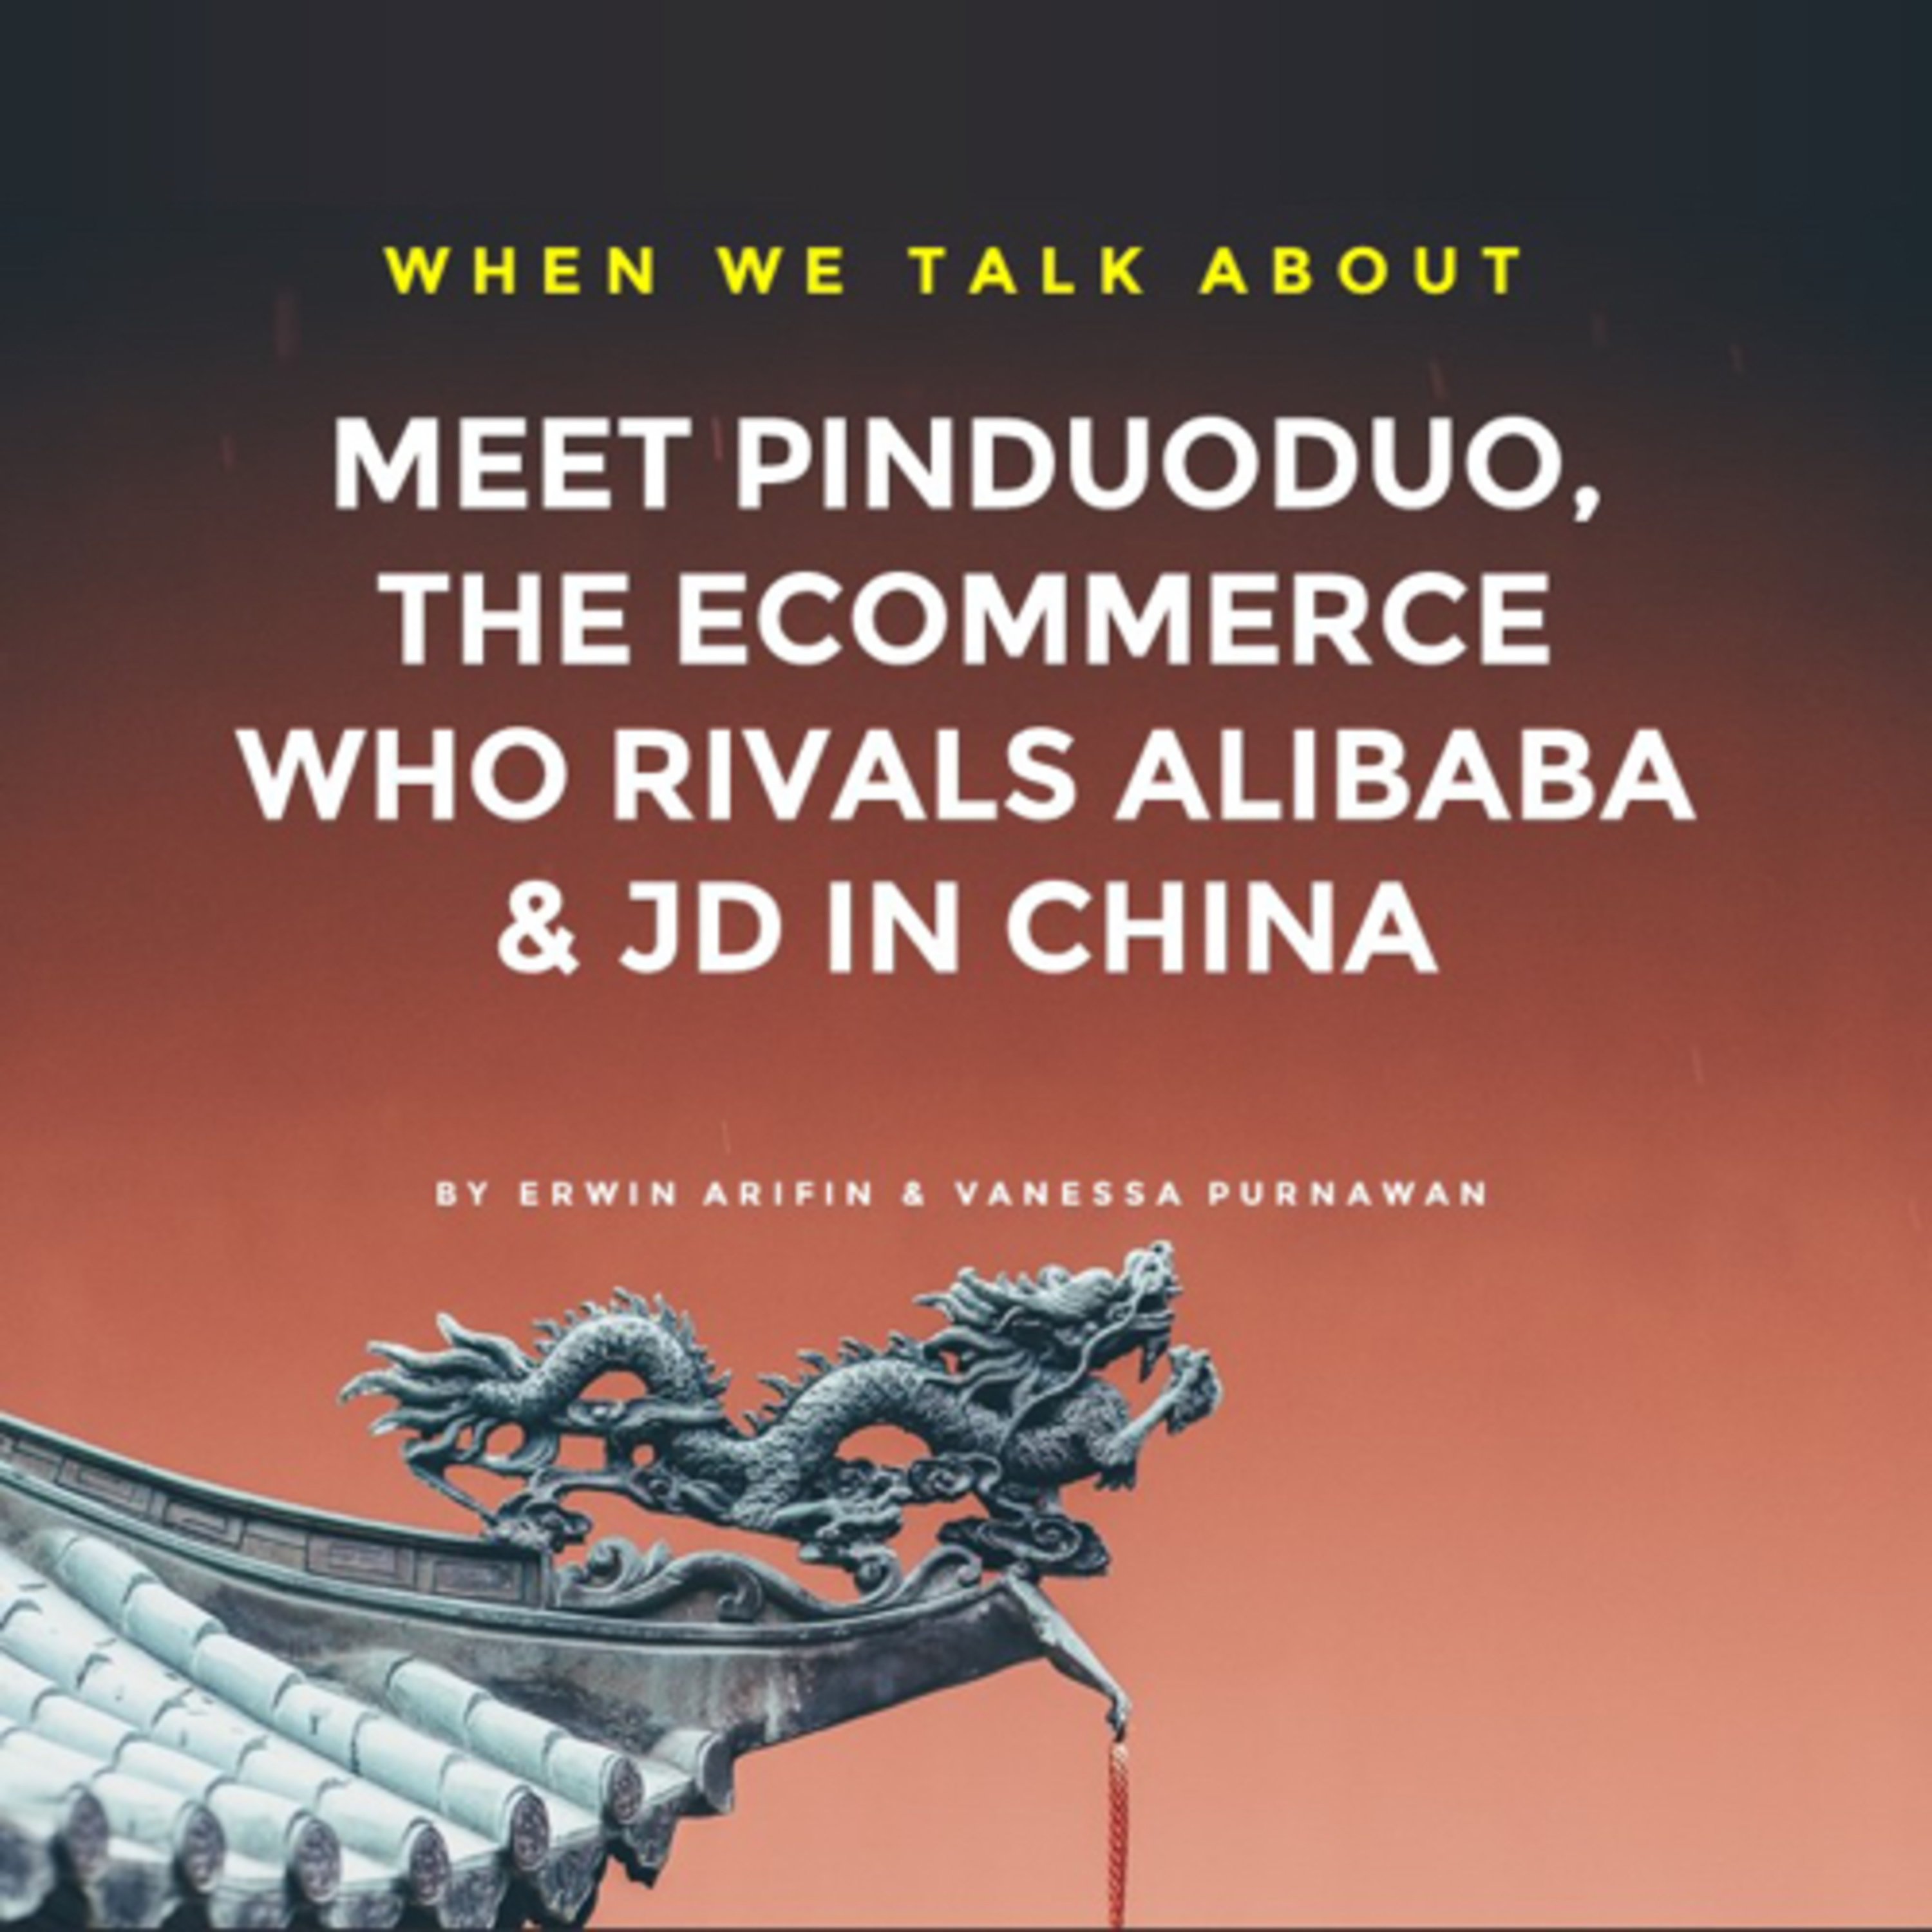 Meet Pinduoduo, the Ecommerce Who Rivals Alibaba & JD in China